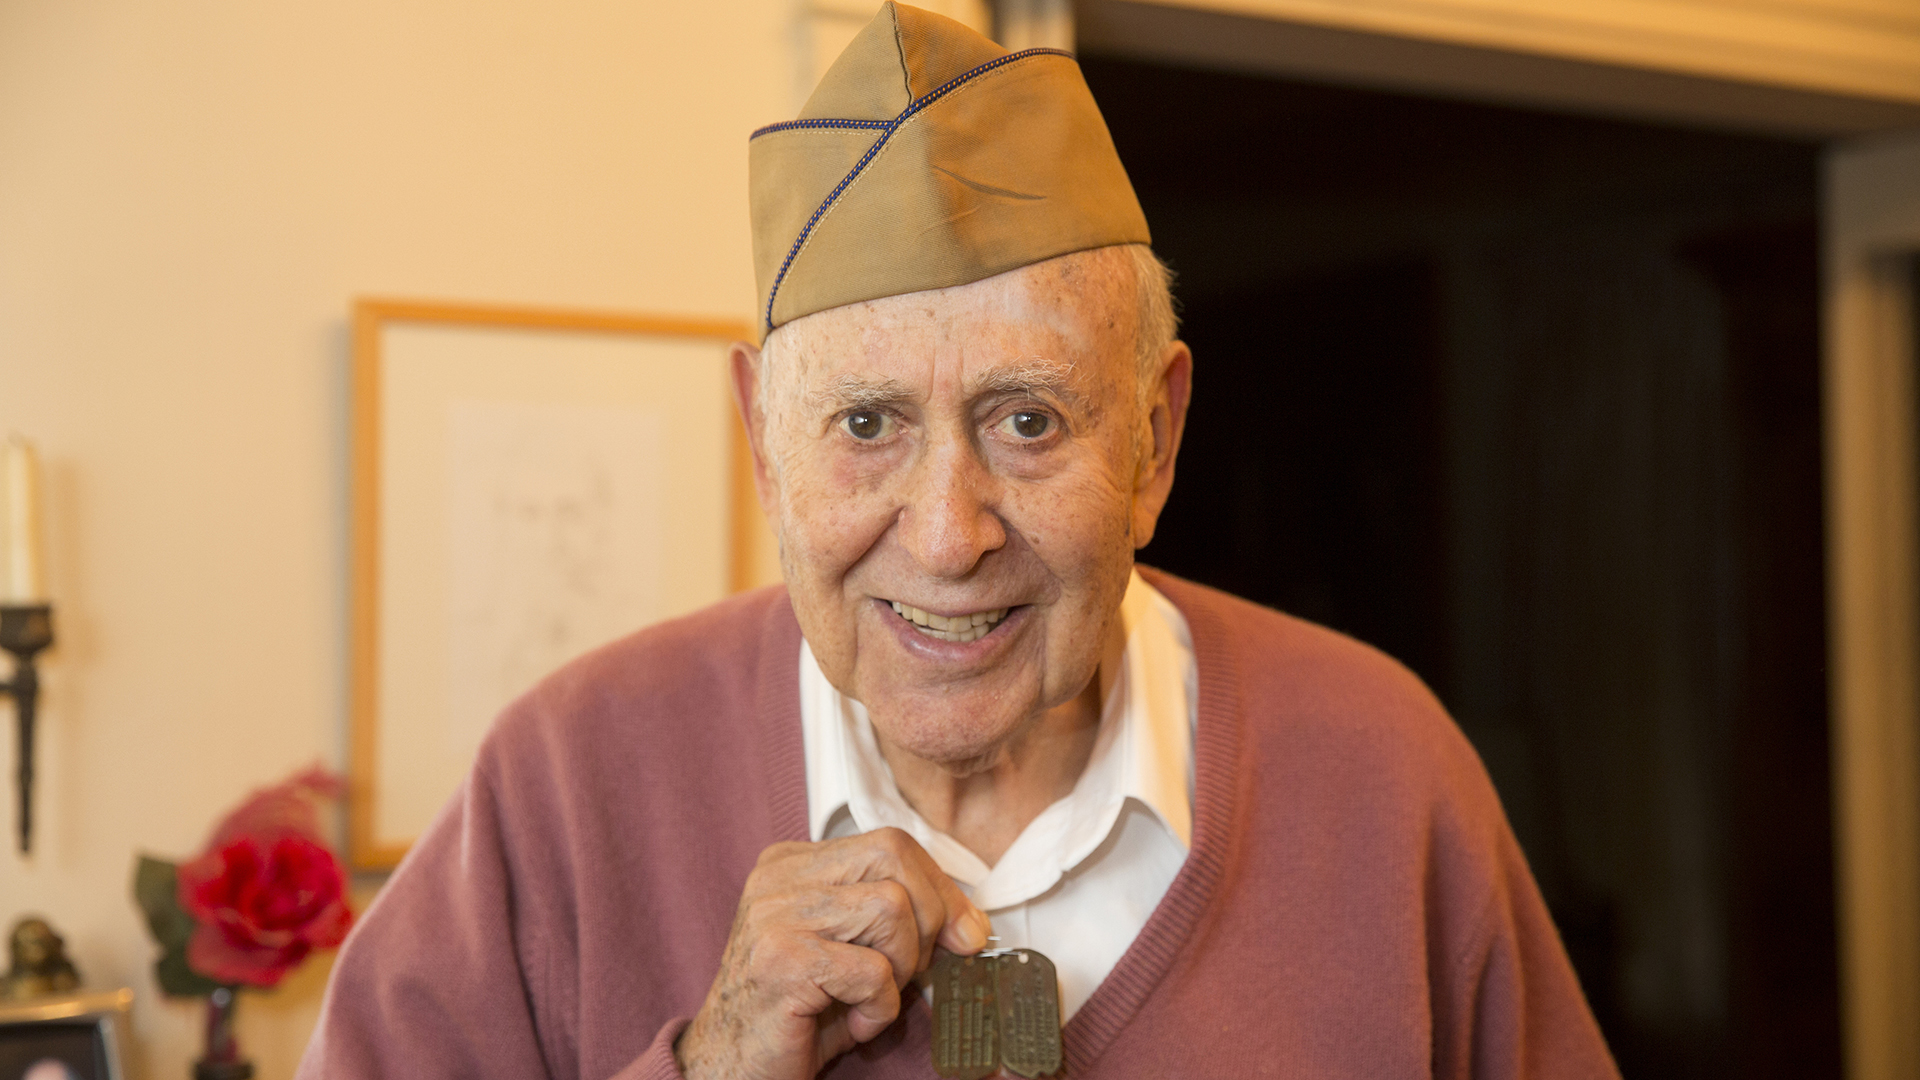 Little-known story of Jewish Americans' WW2 service explored in 'GI Jews'